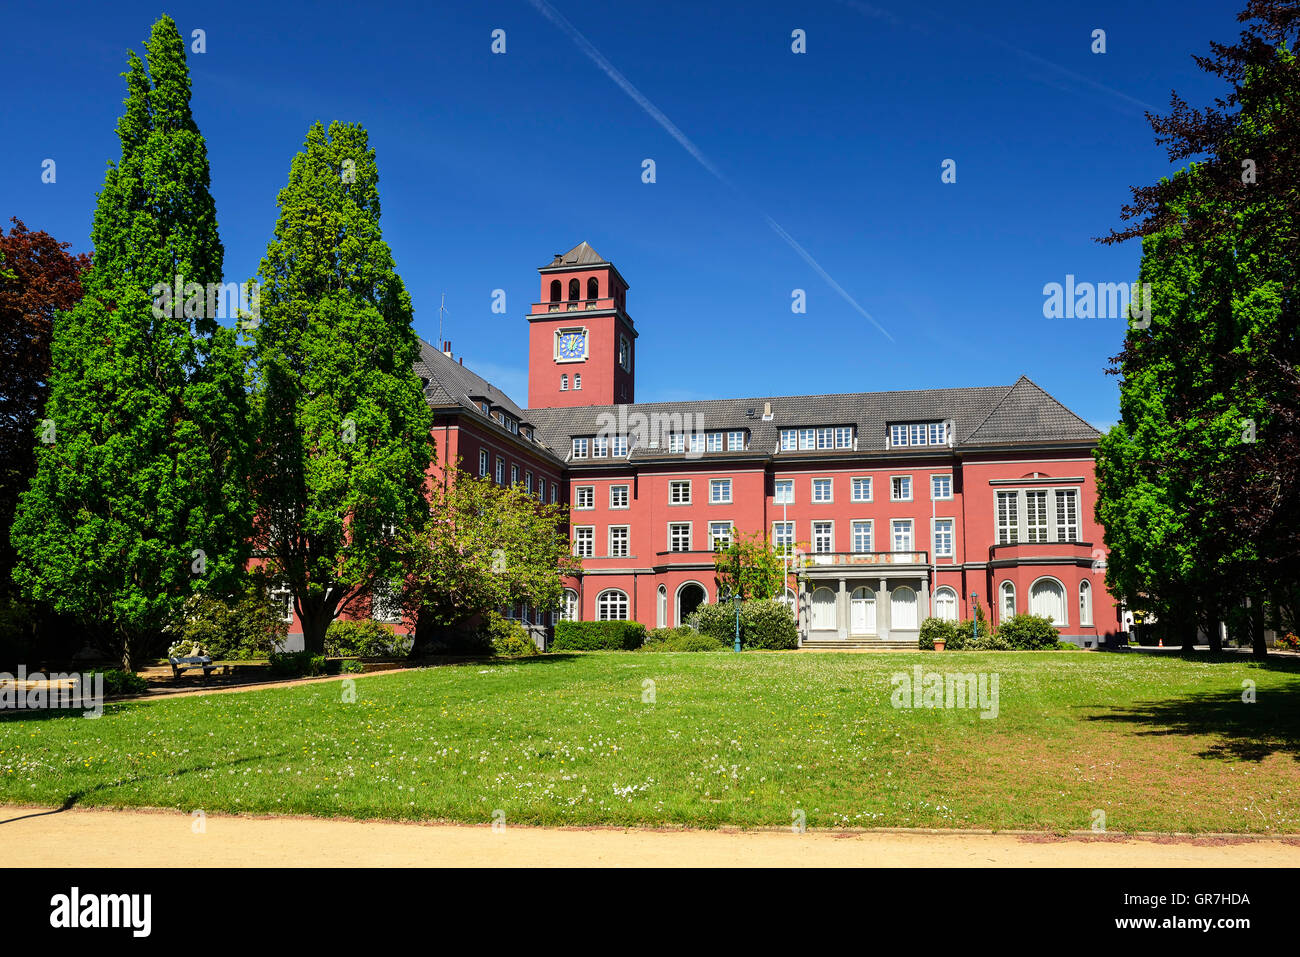 Town Hall In Bergedorf, District Of Hamburg, Germany - Stock Image